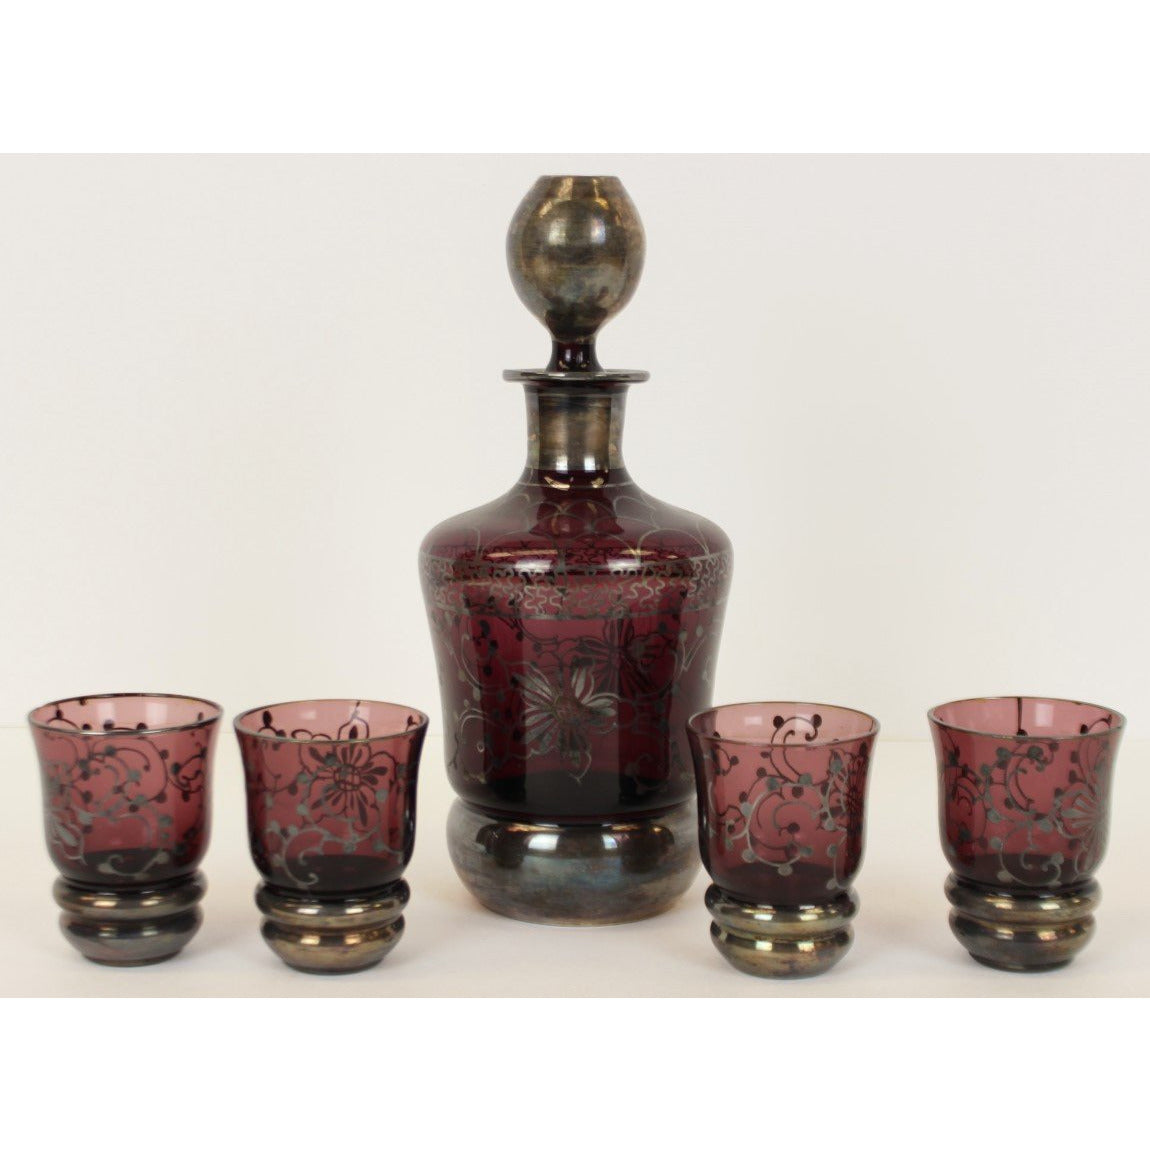 Set of 4 Rose/Silver Shot Glasses & Decanter